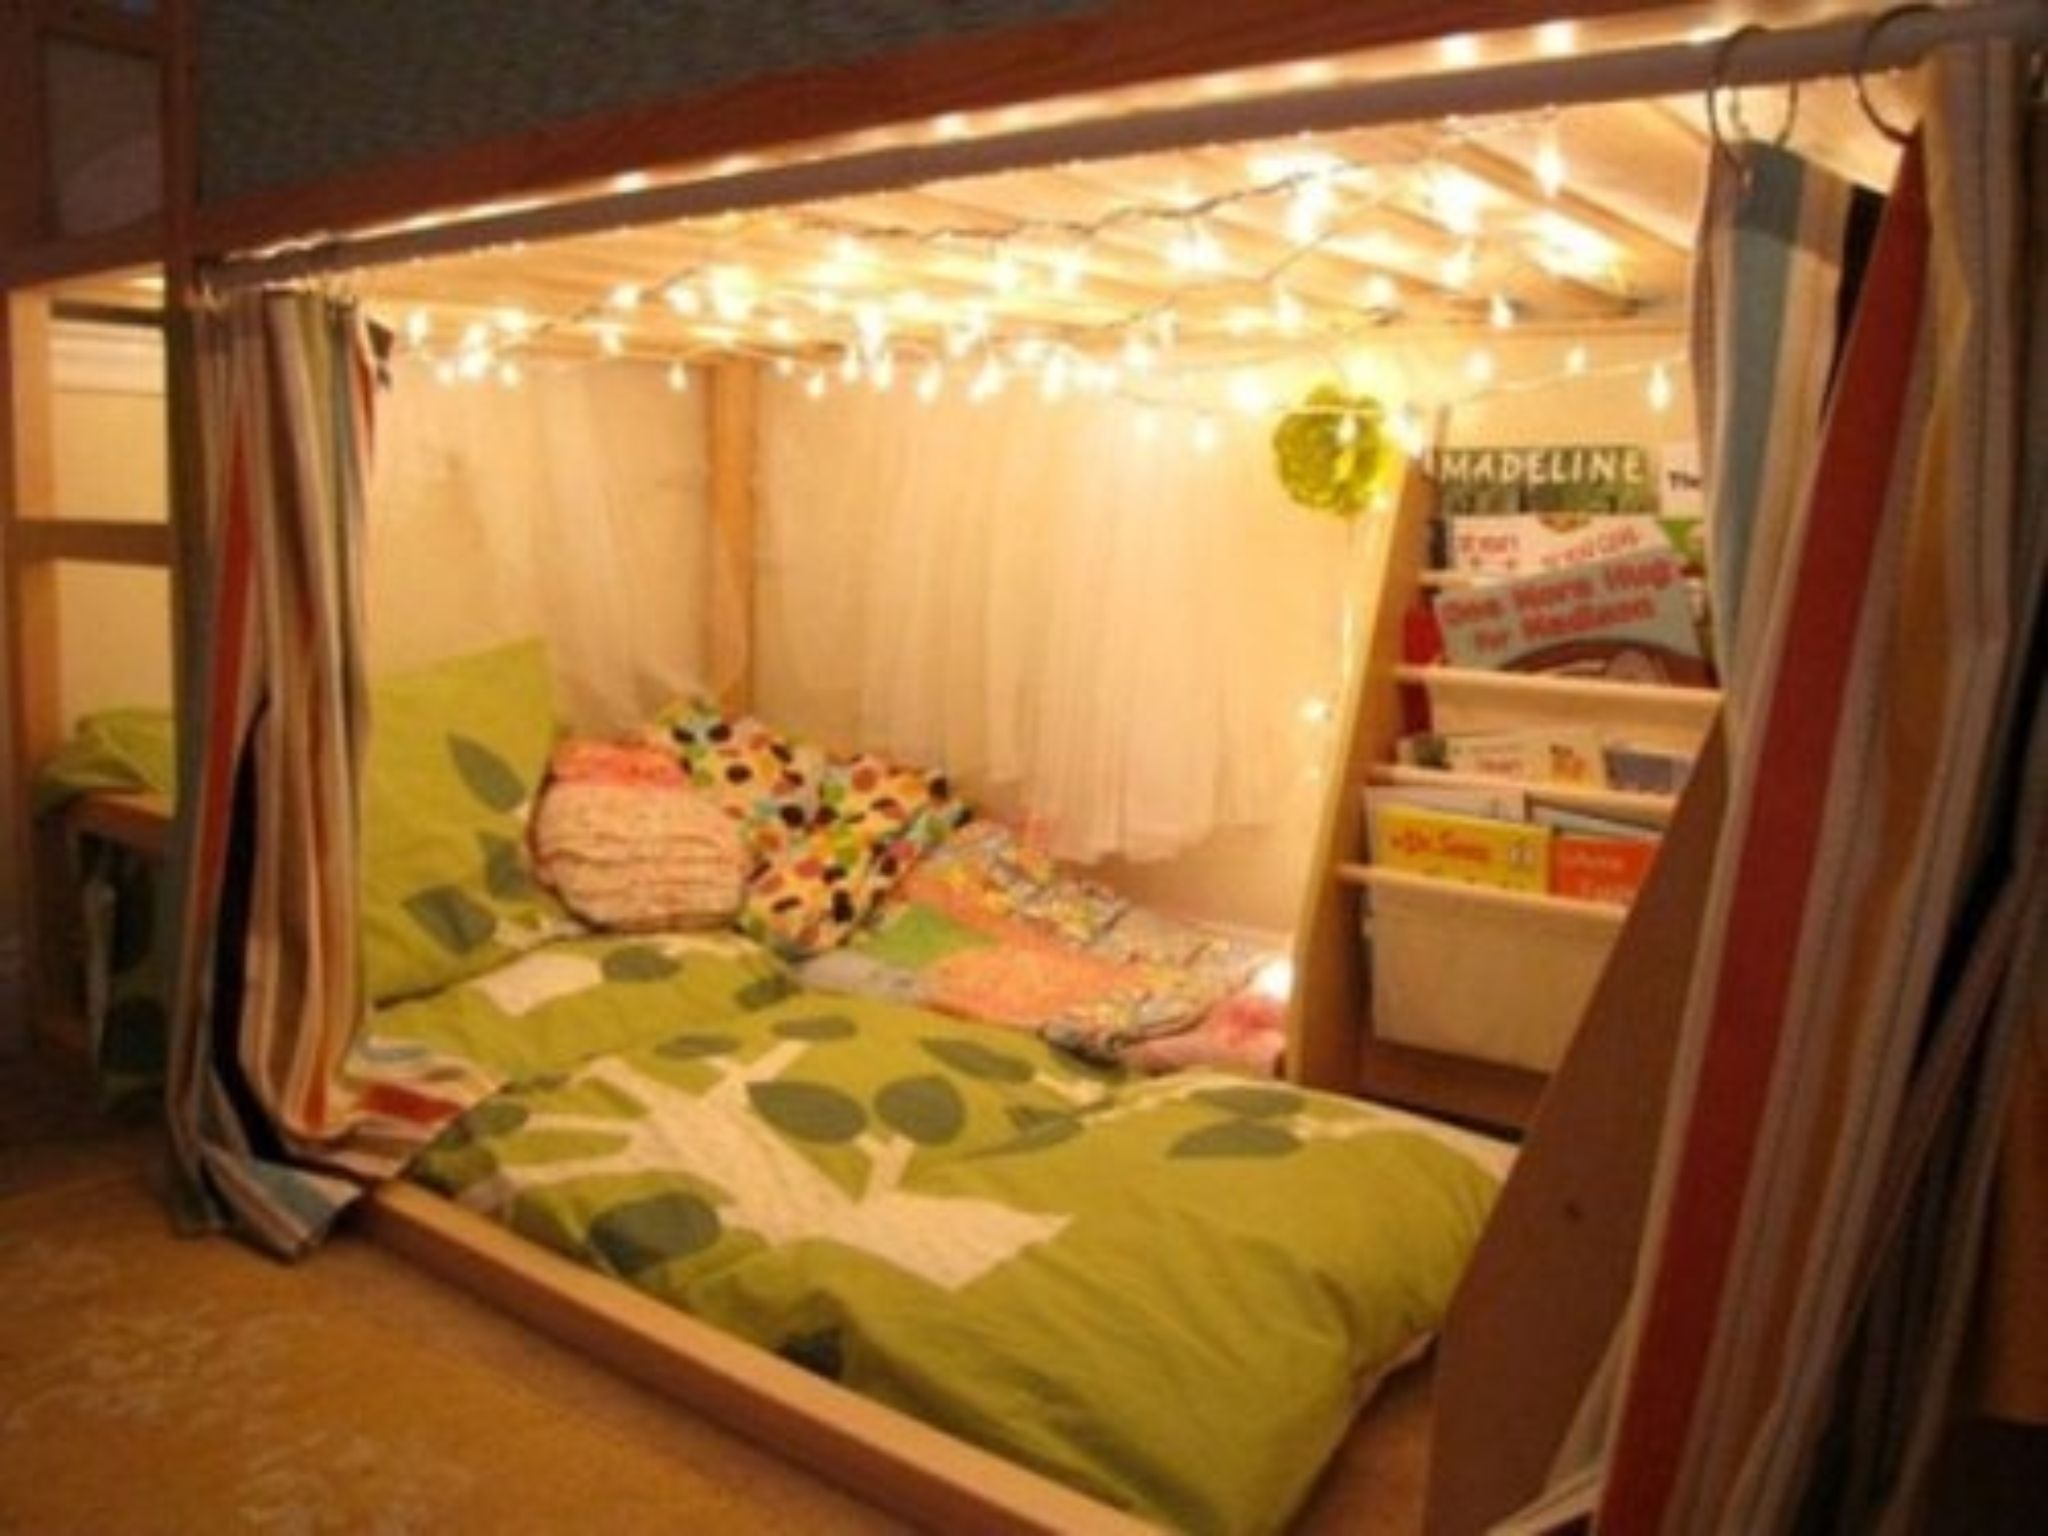 Lights And Curtains On Kate S Bottom Bunk No Books And Her Bed Isn